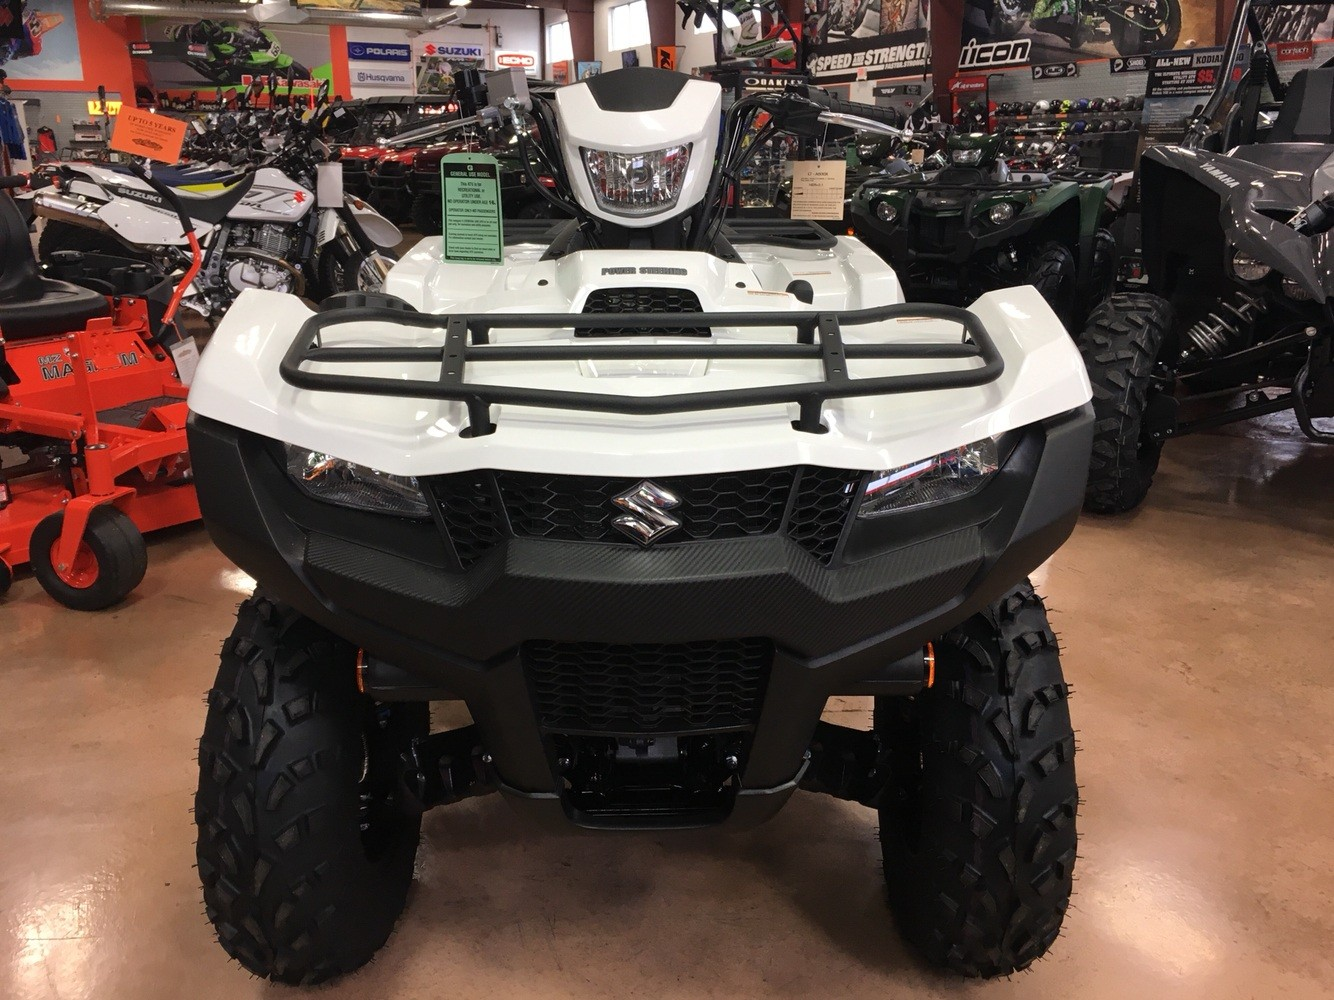 2019 Suzuki KingQuad 500AXi Power Steering SE in Evansville, Indiana - Photo 7